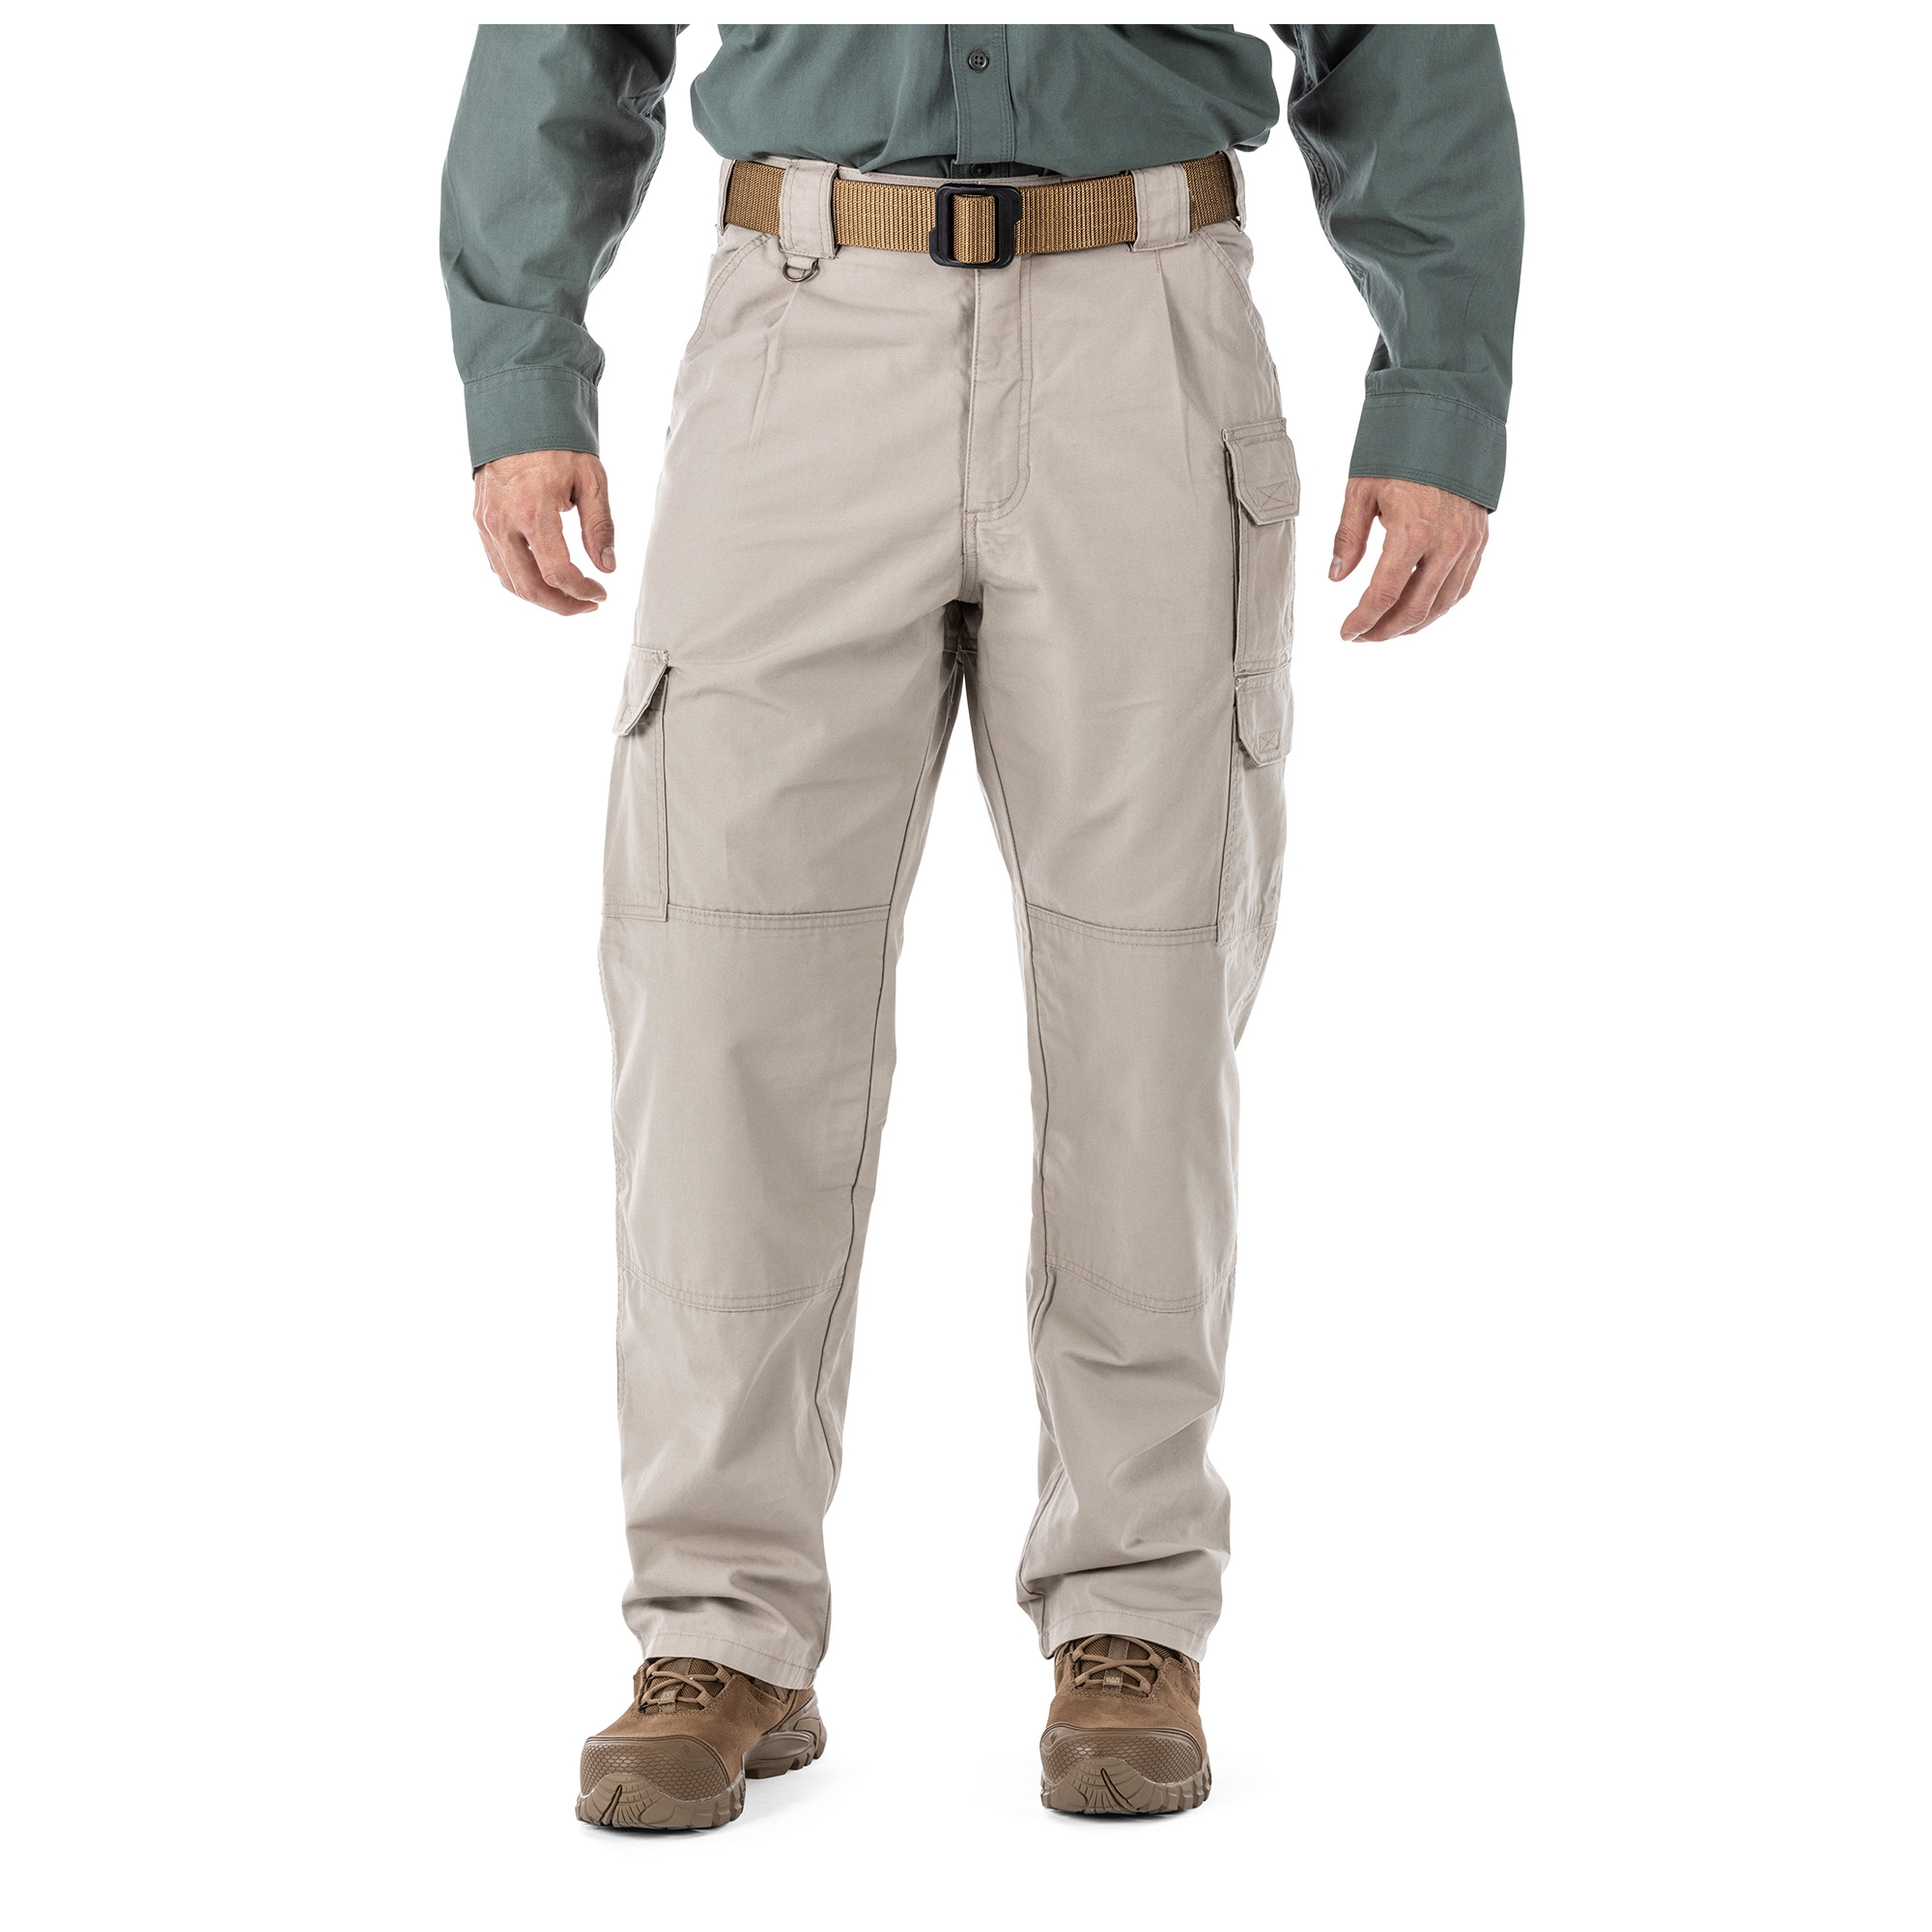 MEN'S 5.11 TACTICAL PANT